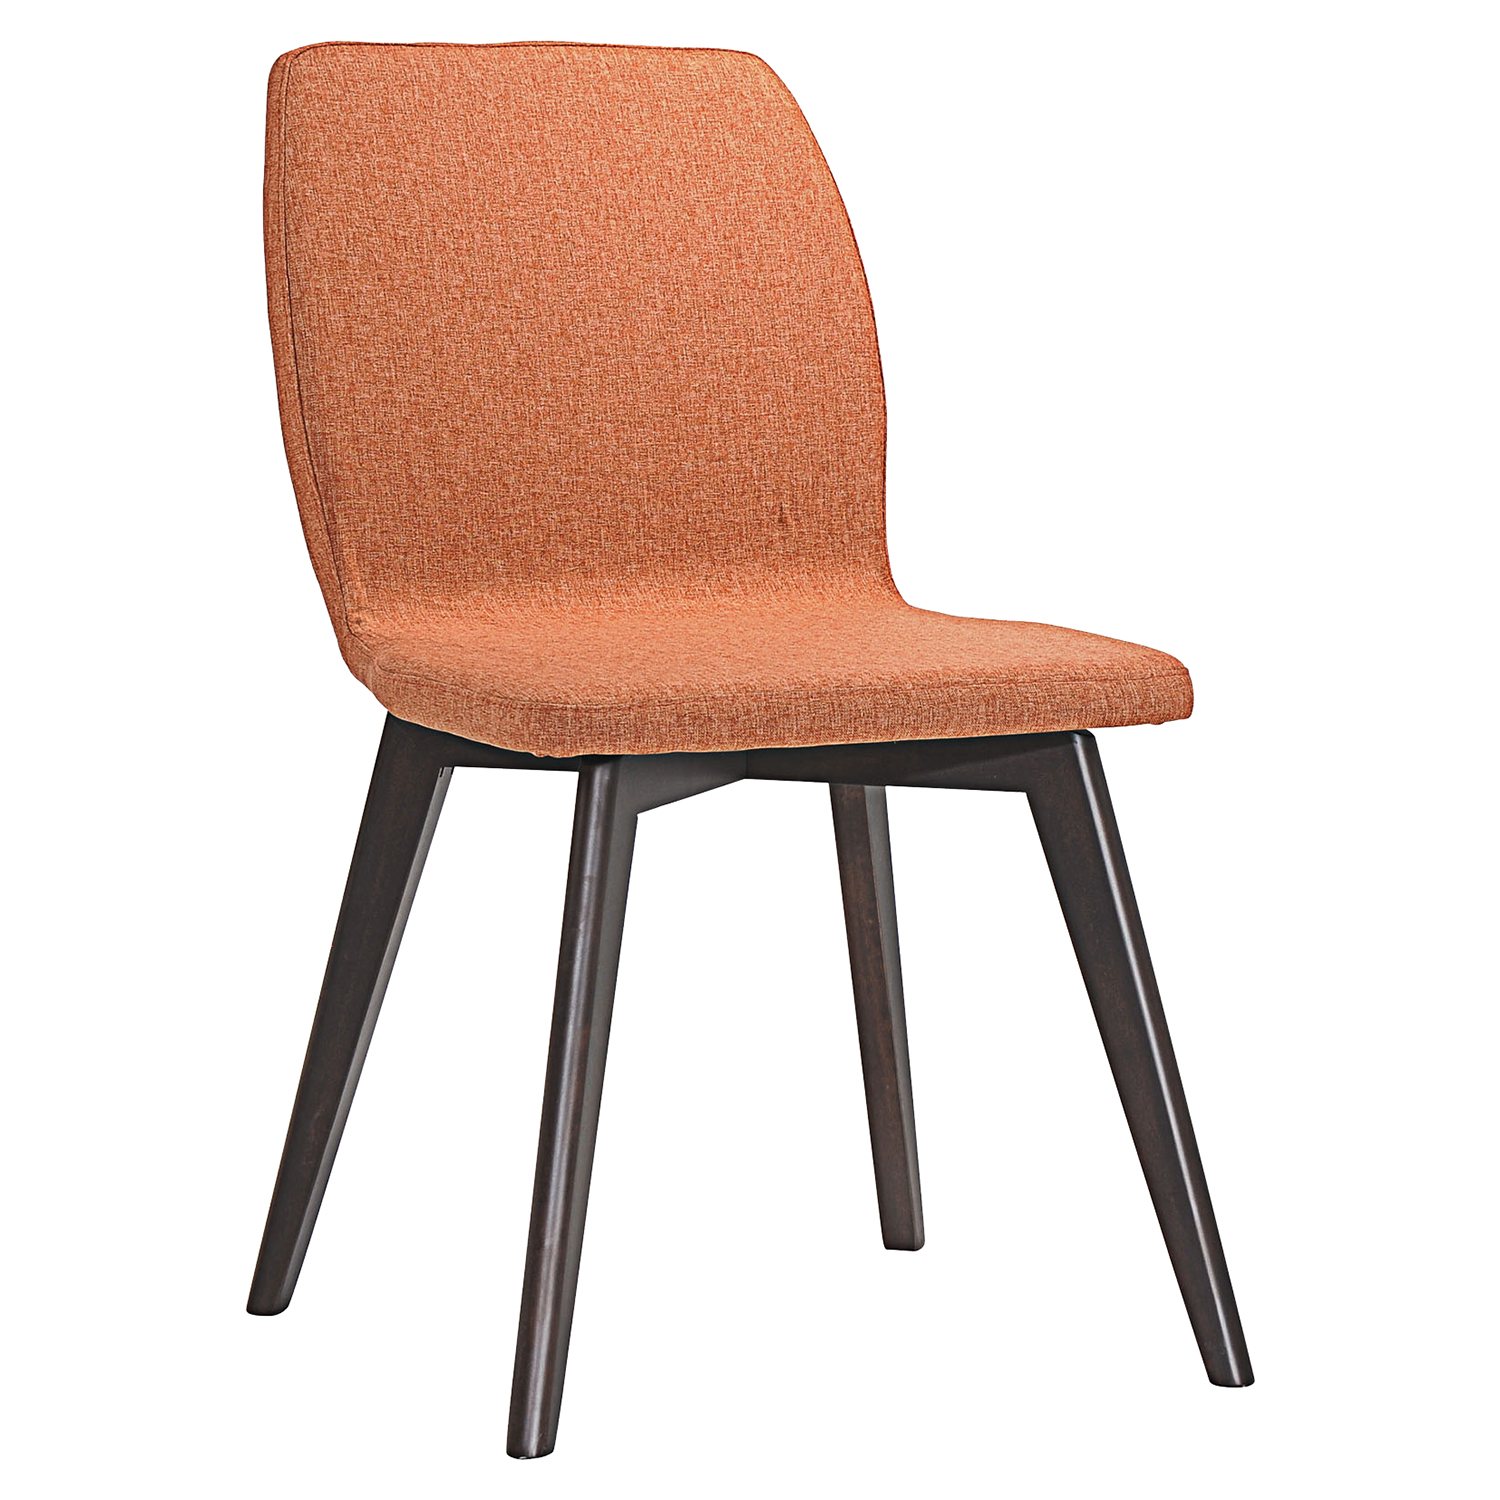 Proclaim Upholstery Dining Side Chair - Walnut, Orange (Set of 2) - EEI-2059-WAL-ORA-SET